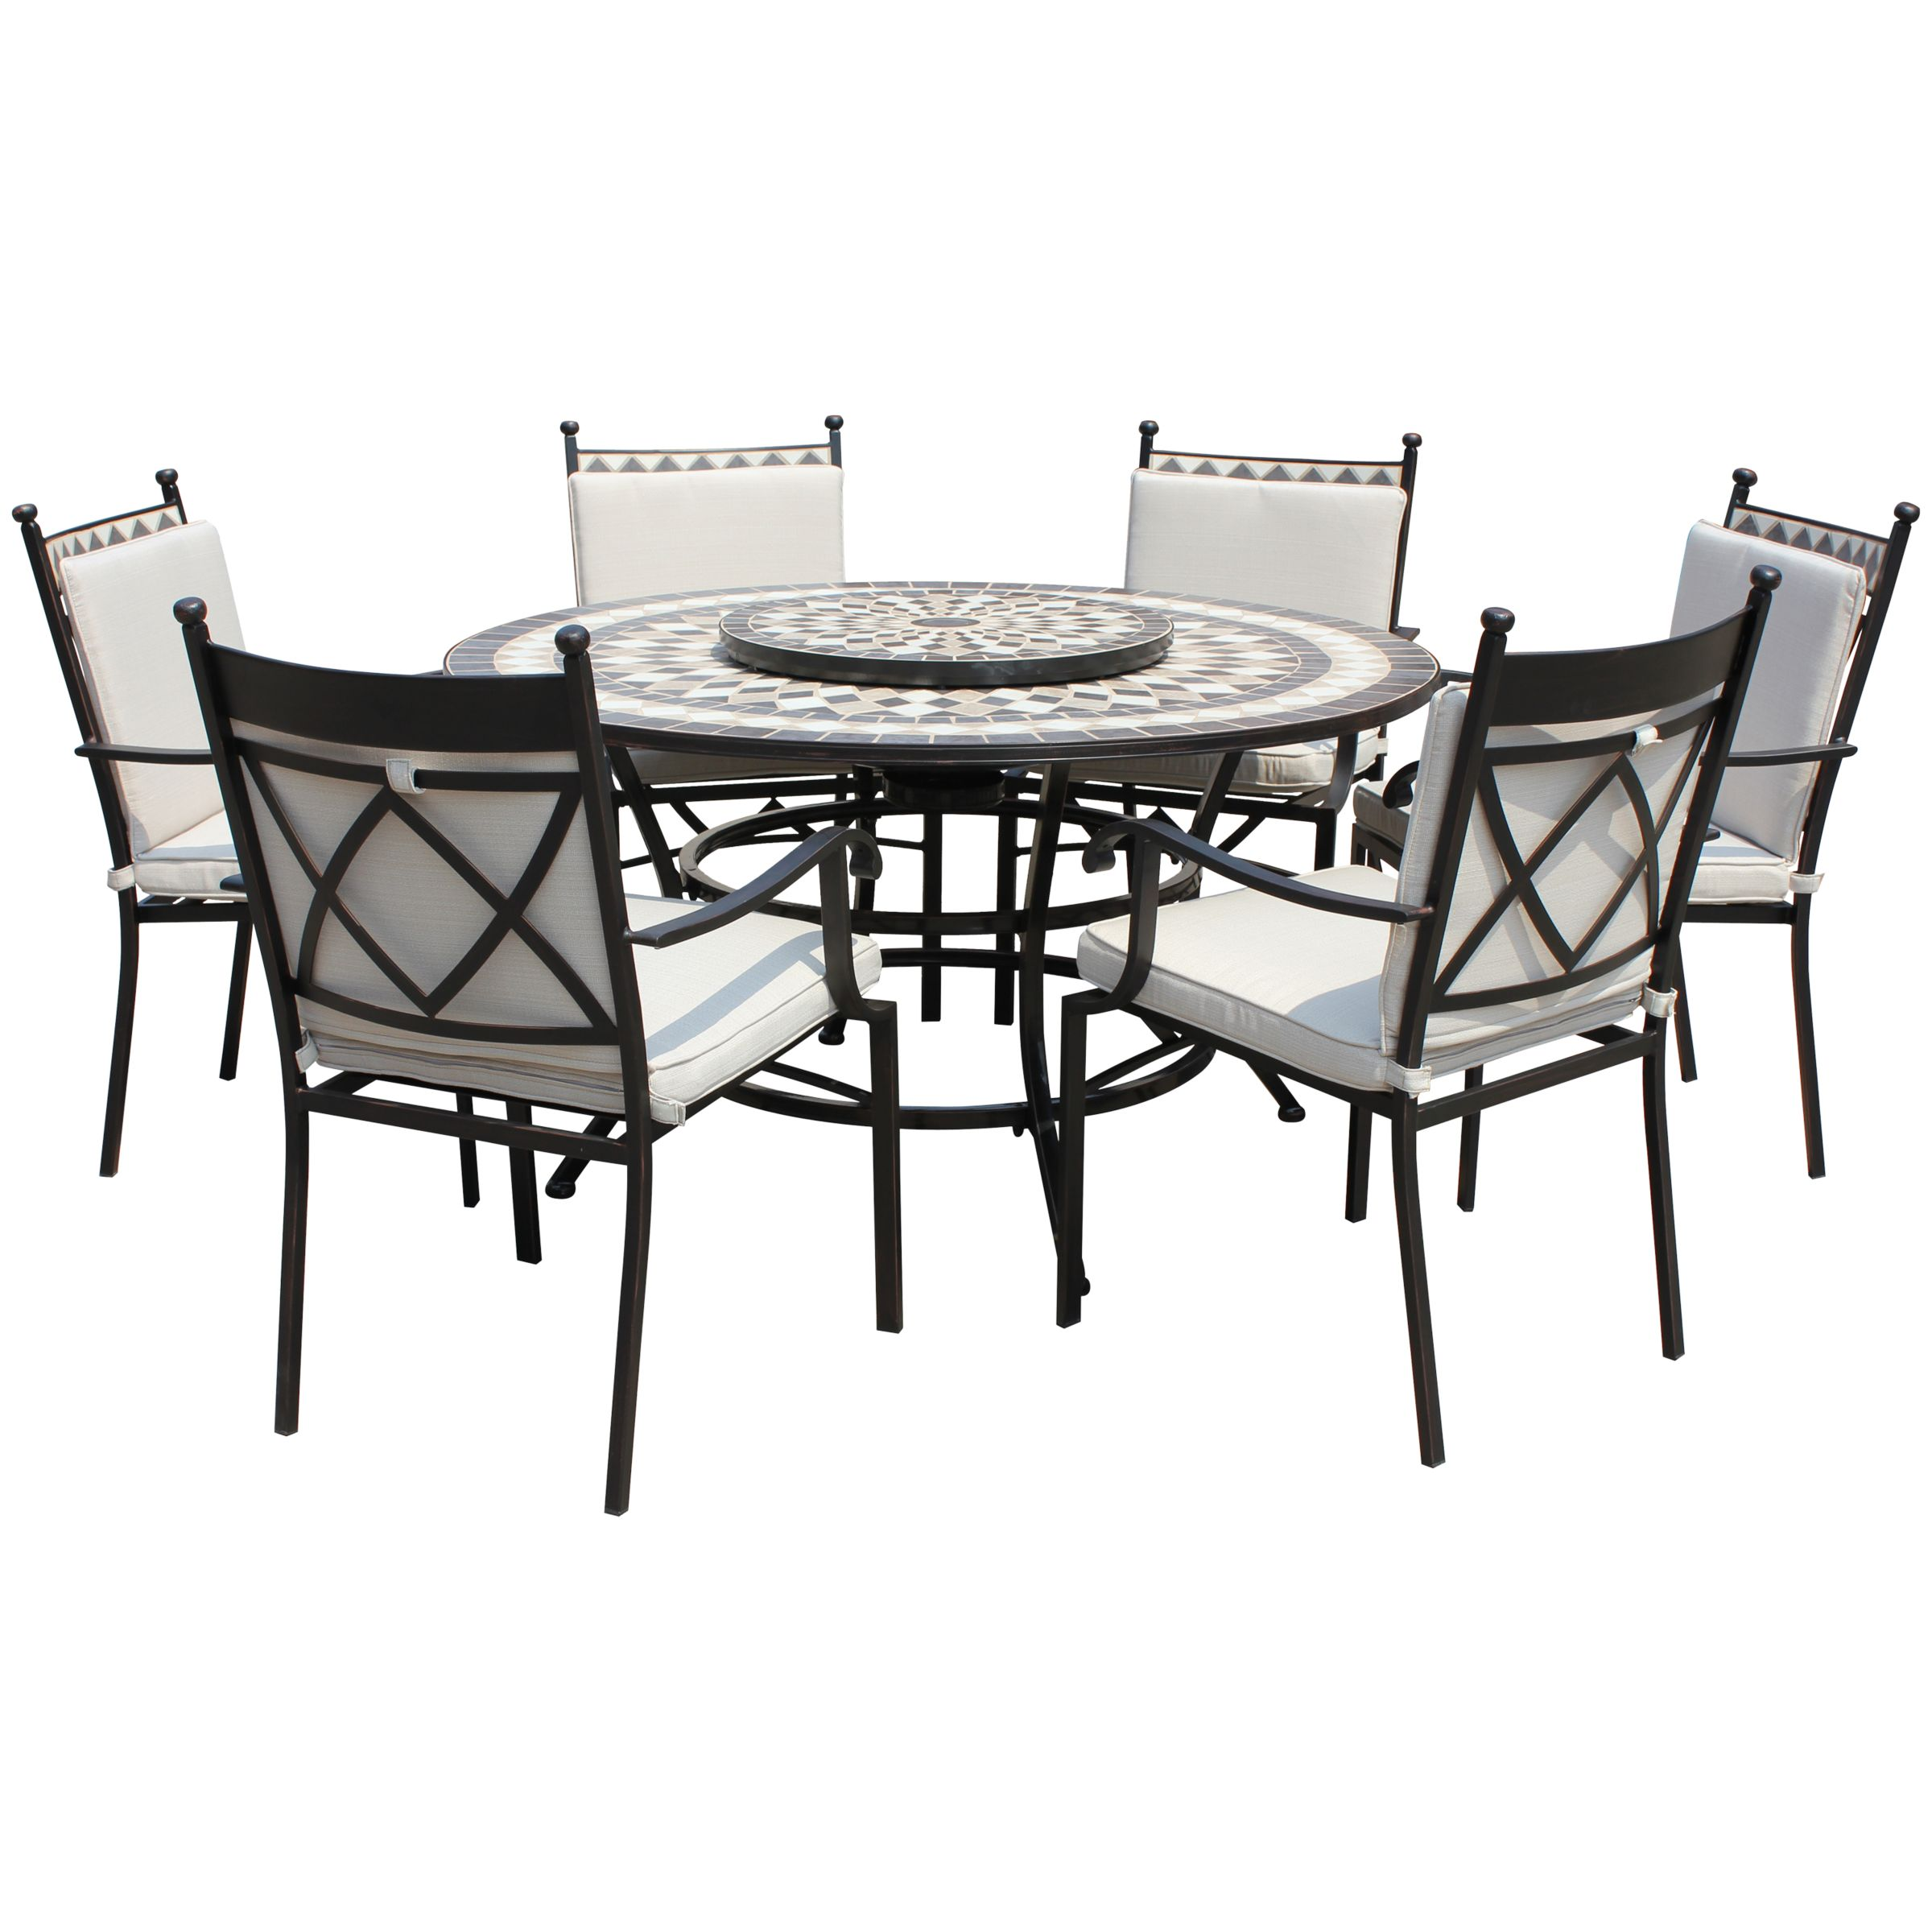 Picture of: Lg Outdoor Casablanca 6 Seater Round Dining Table Chairs Set With Firepit Lazy Susan At John Lewis Partners